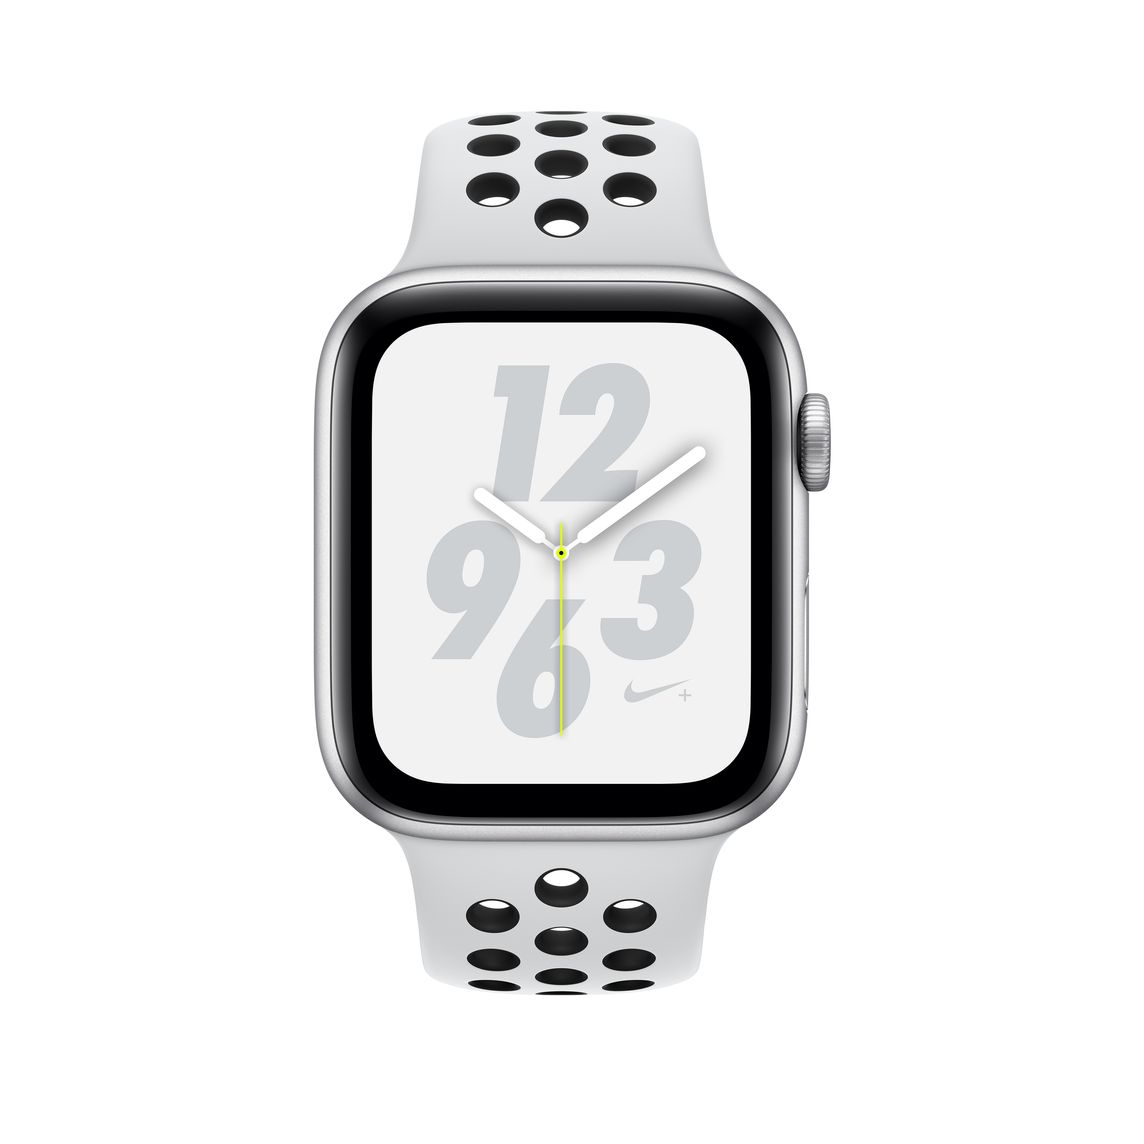 Refurbished Apple Watch Nike+ Series 4 GPS + Cellular, 40mm Silver Aluminium Case with Pure PlatinumBlack Nike Sport Band